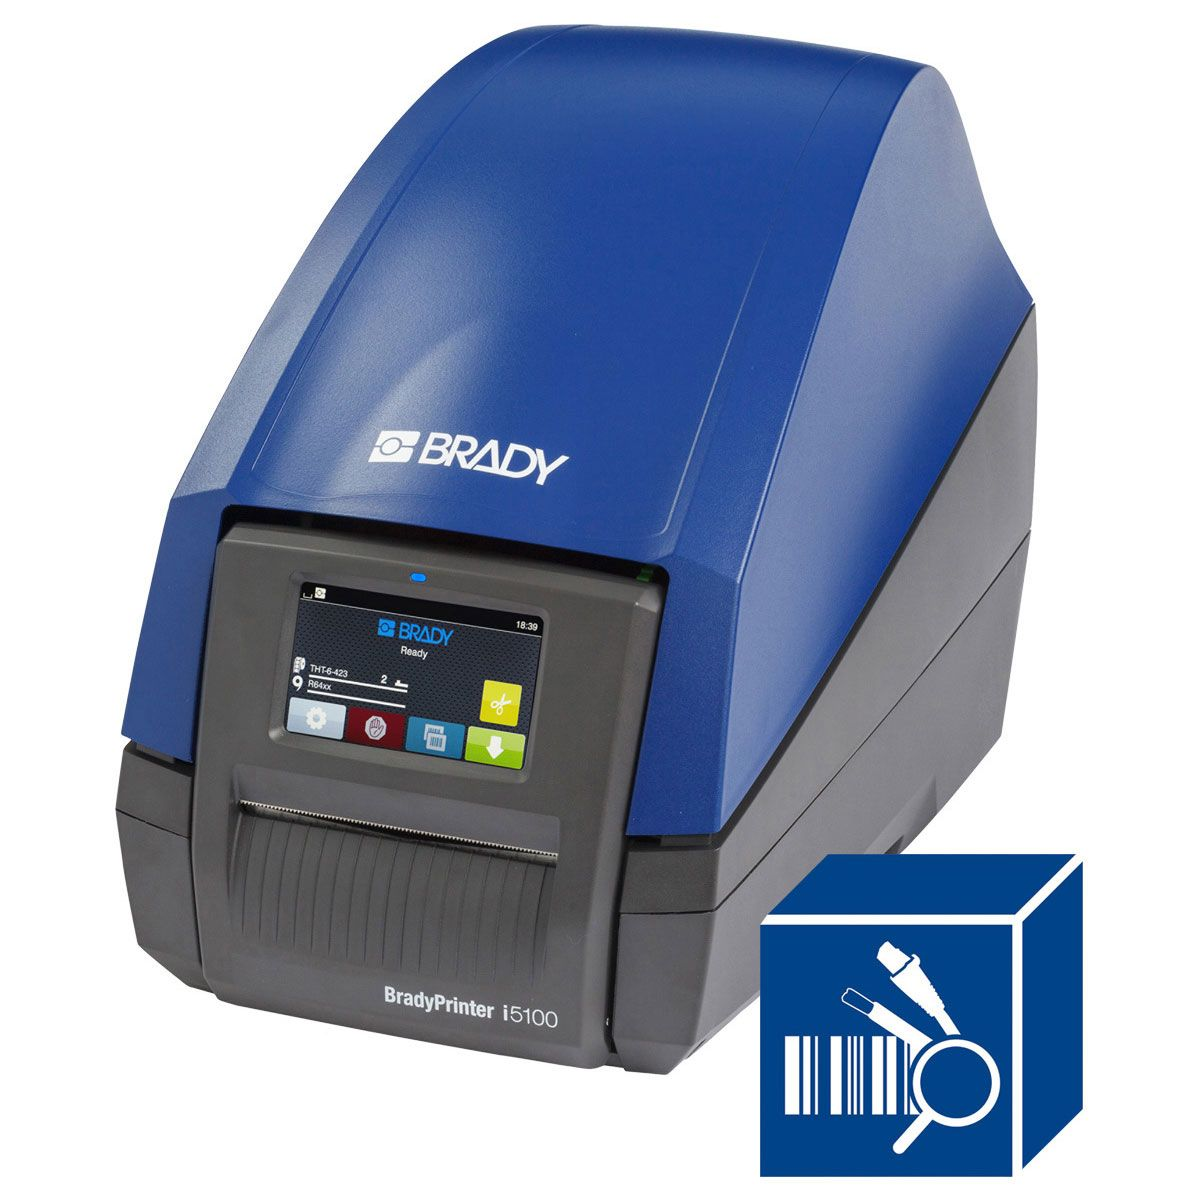 BradyPrinter i5100 Printer with Product and Wire ID Software